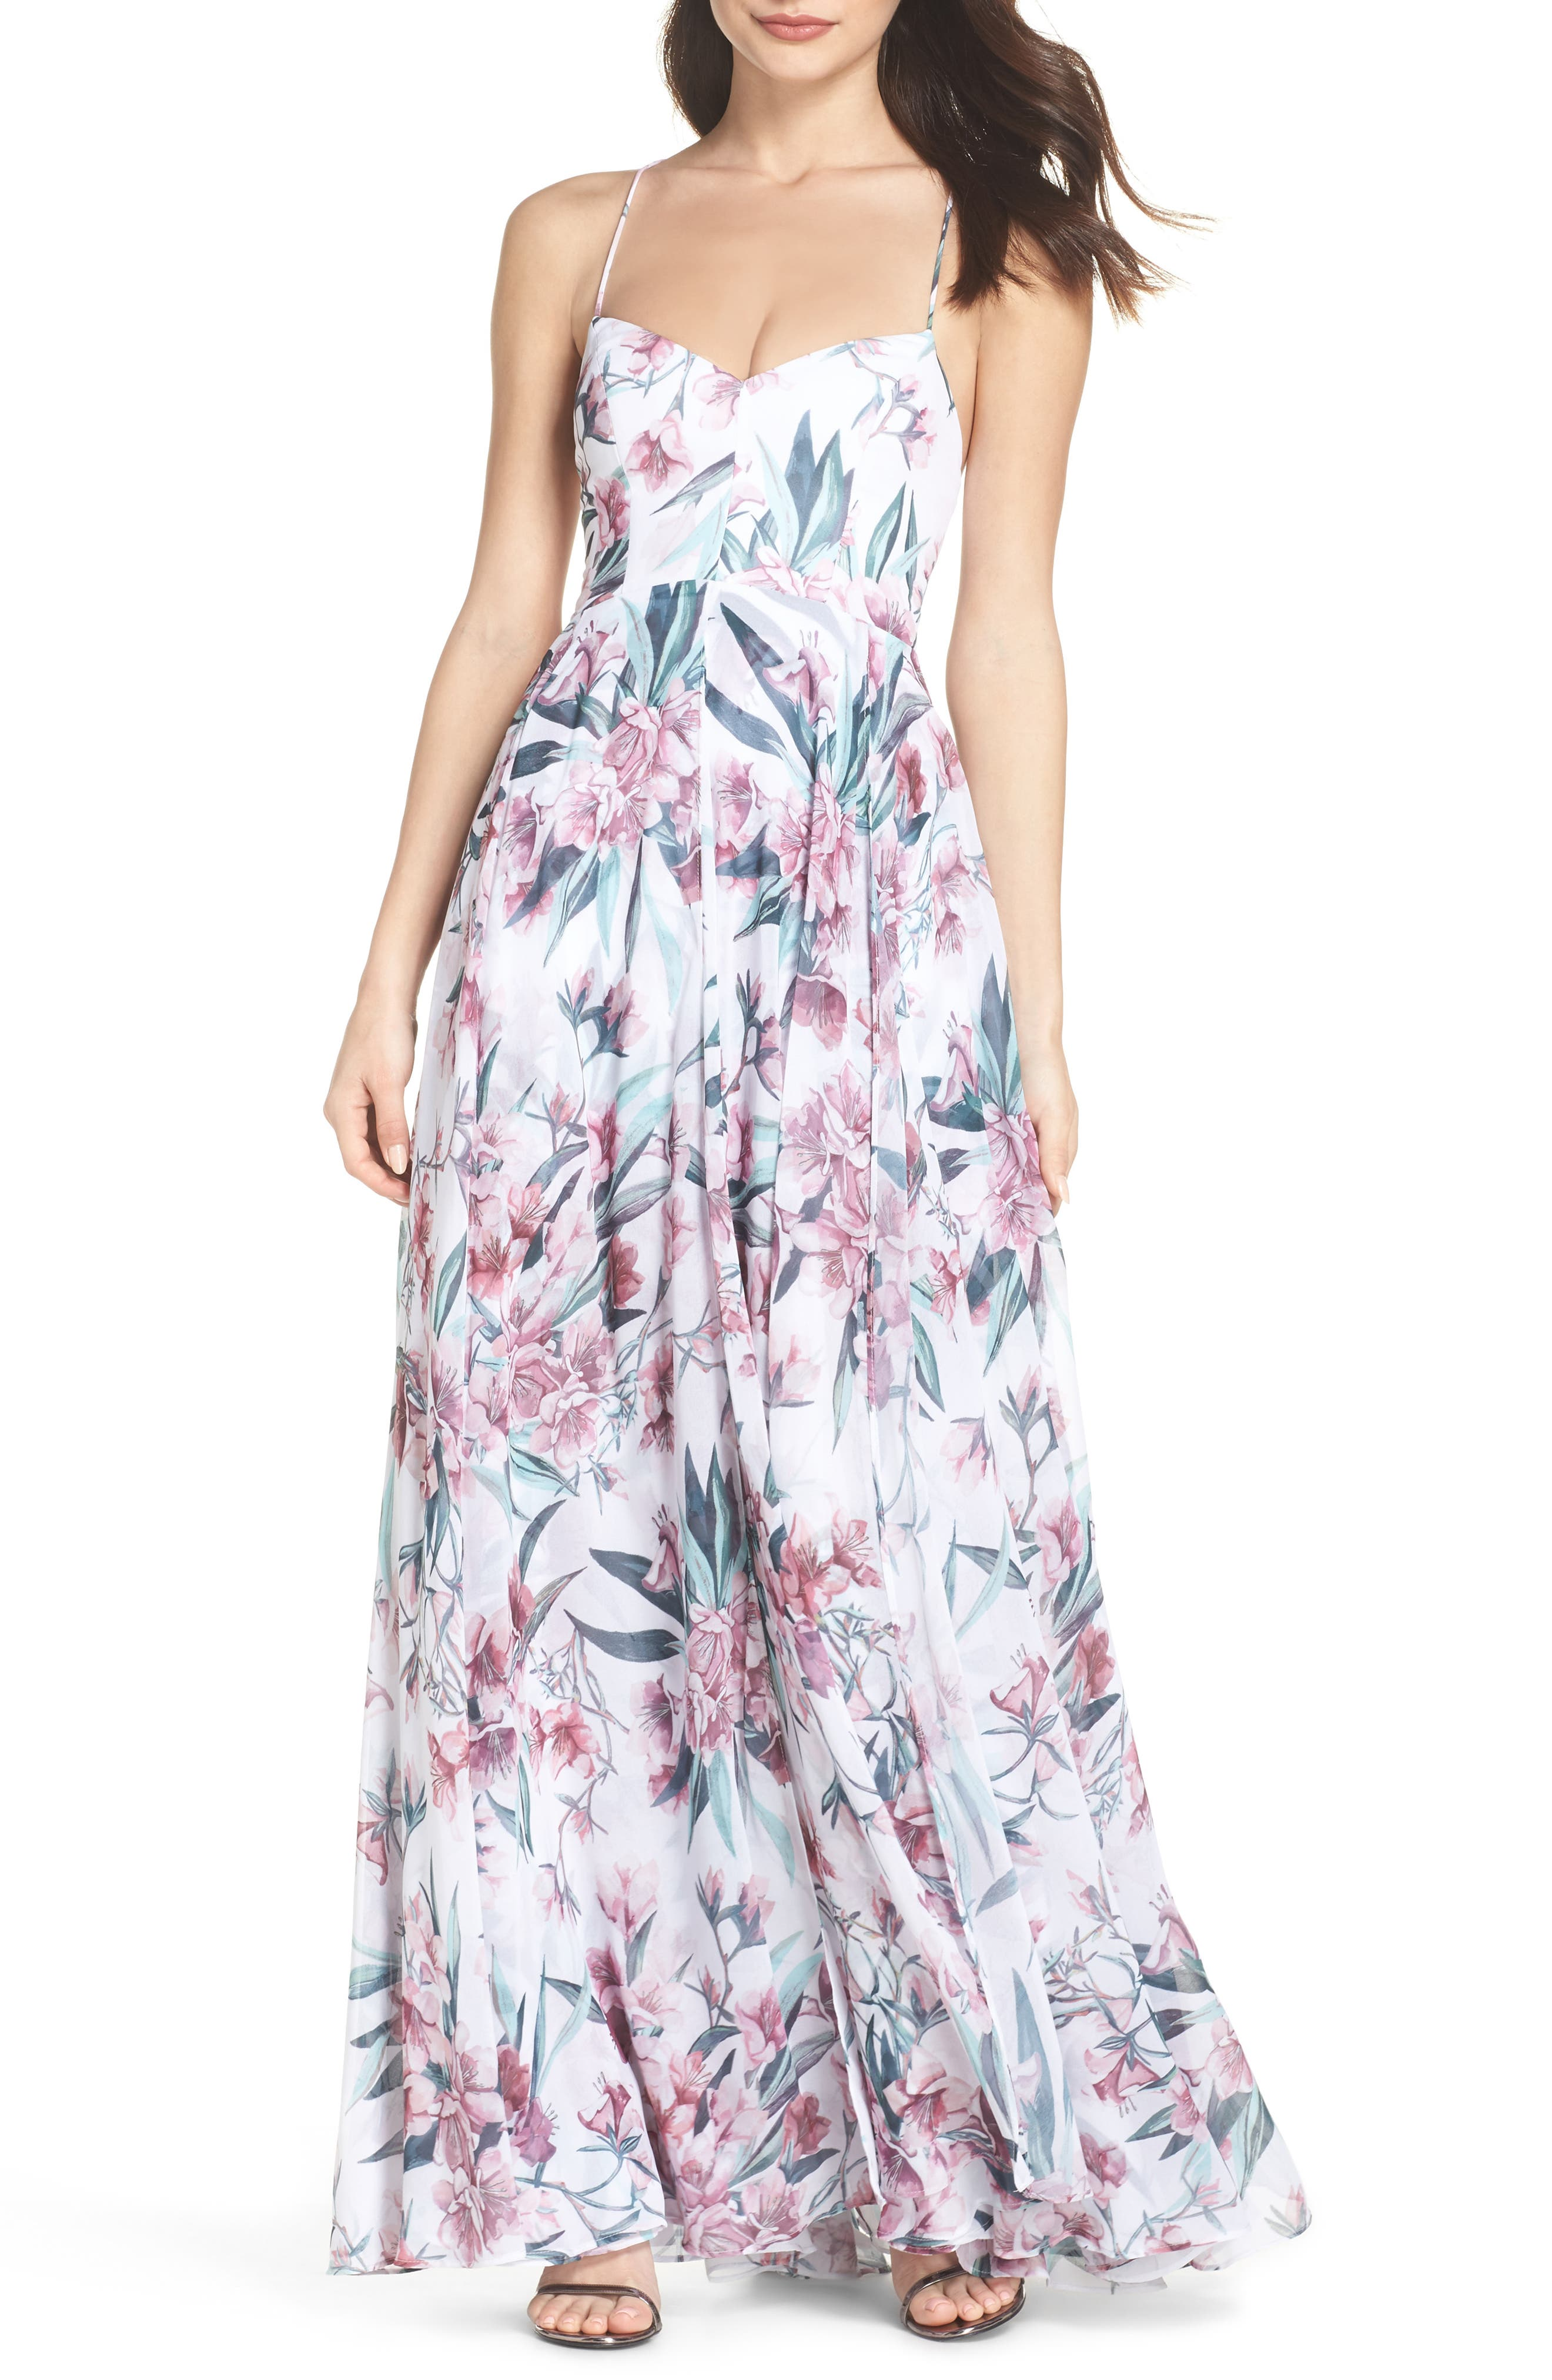 KHOO FLORAL GOWN